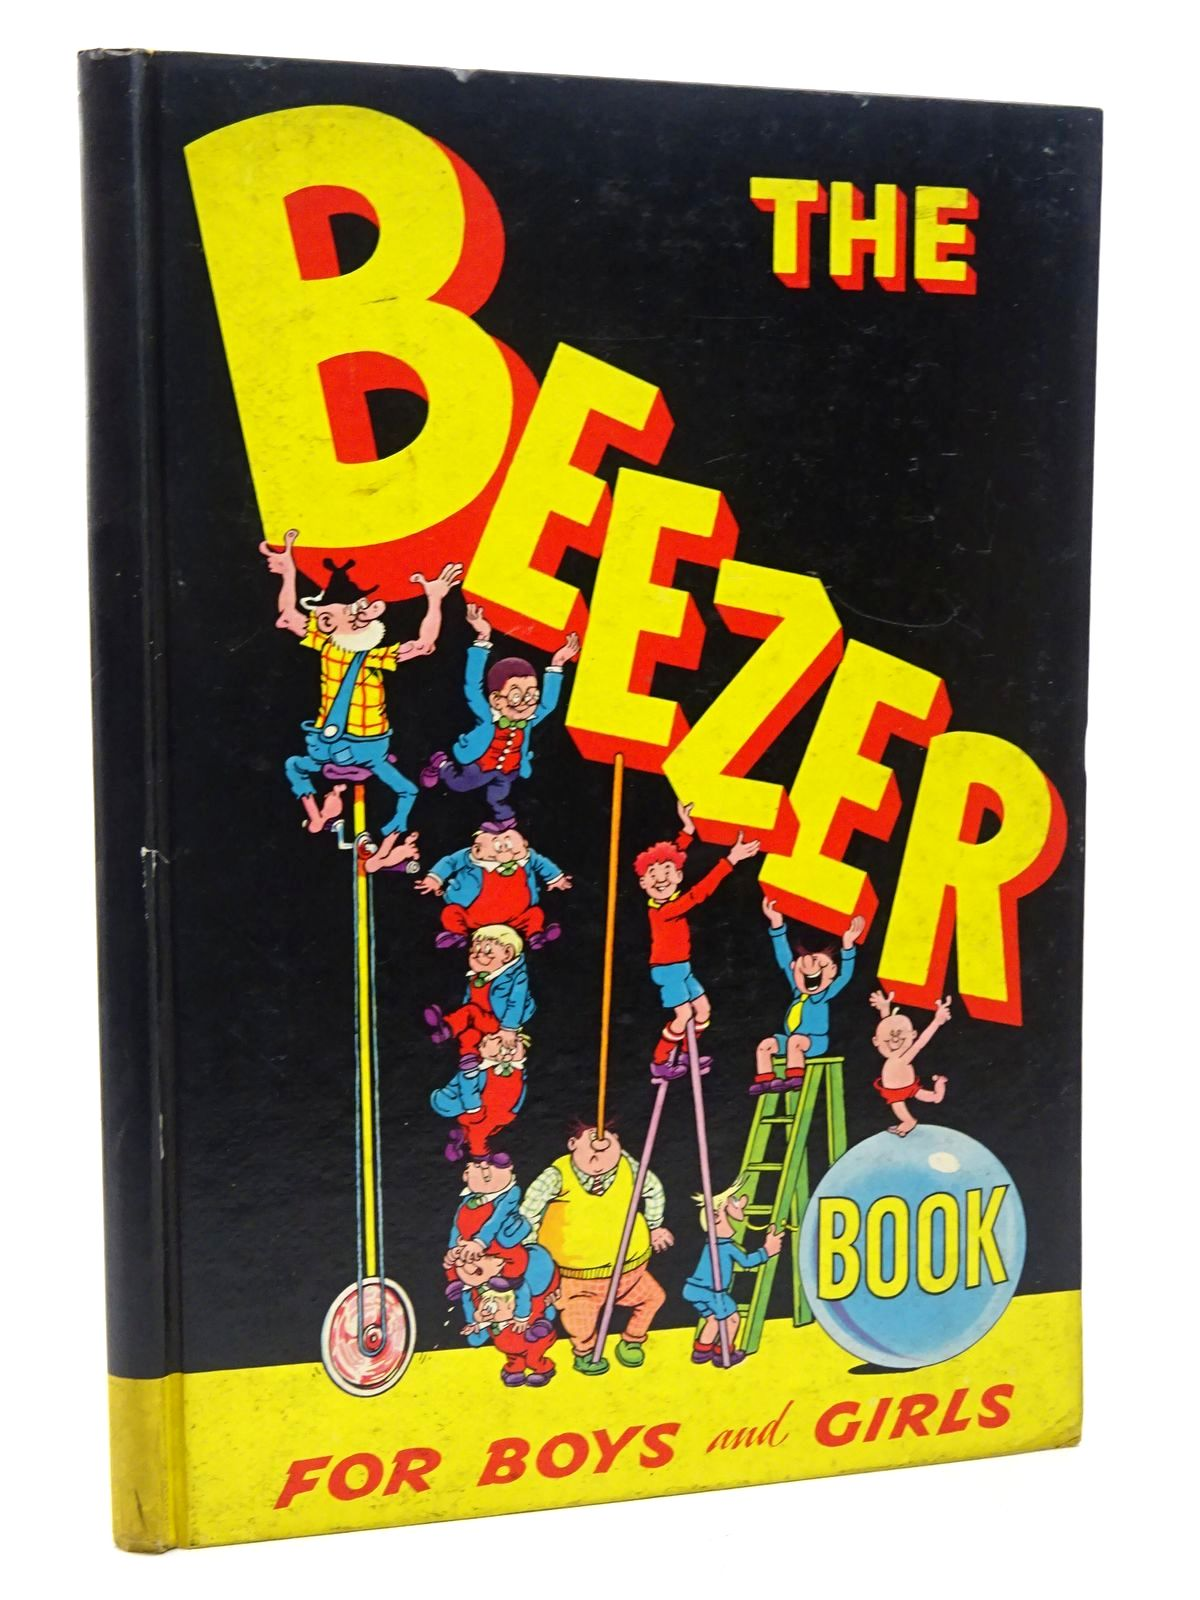 Photo of THE BEEZER BOOK 1959 published by D.C. Thomson & Co Ltd. (STOCK CODE: 2124639)  for sale by Stella & Rose's Books